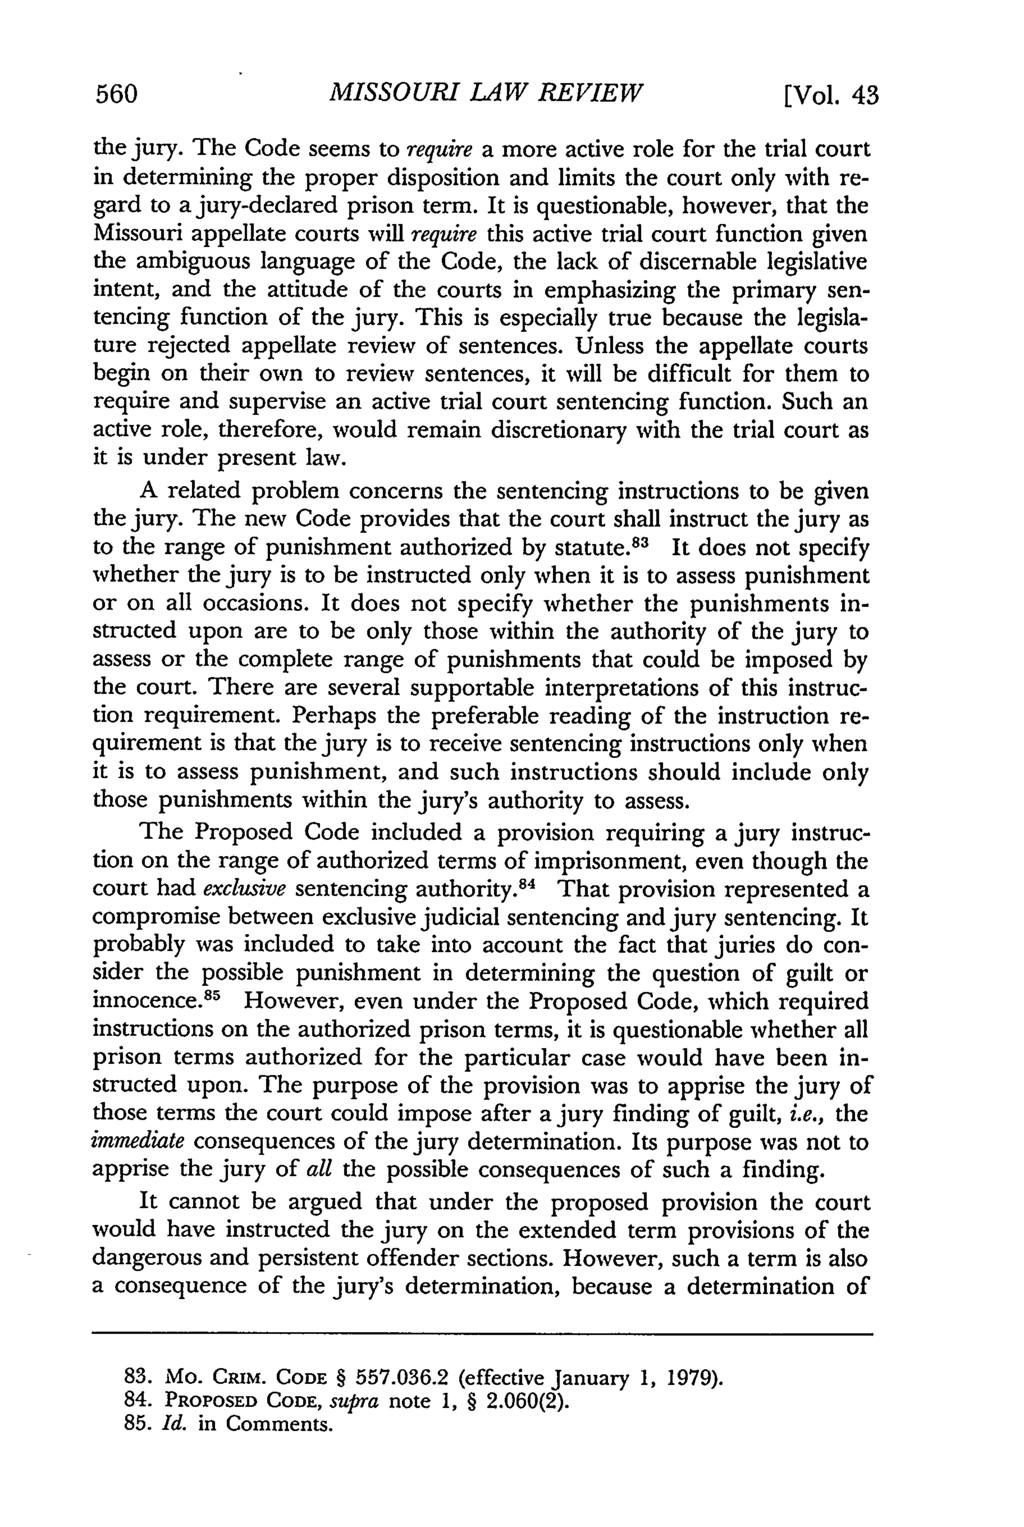 560 Missouri Law Review, Vol. 43, Iss. 3 [1978], Art. 6 MISSOURI LAW REVIEW [Vol. 43 the jury.